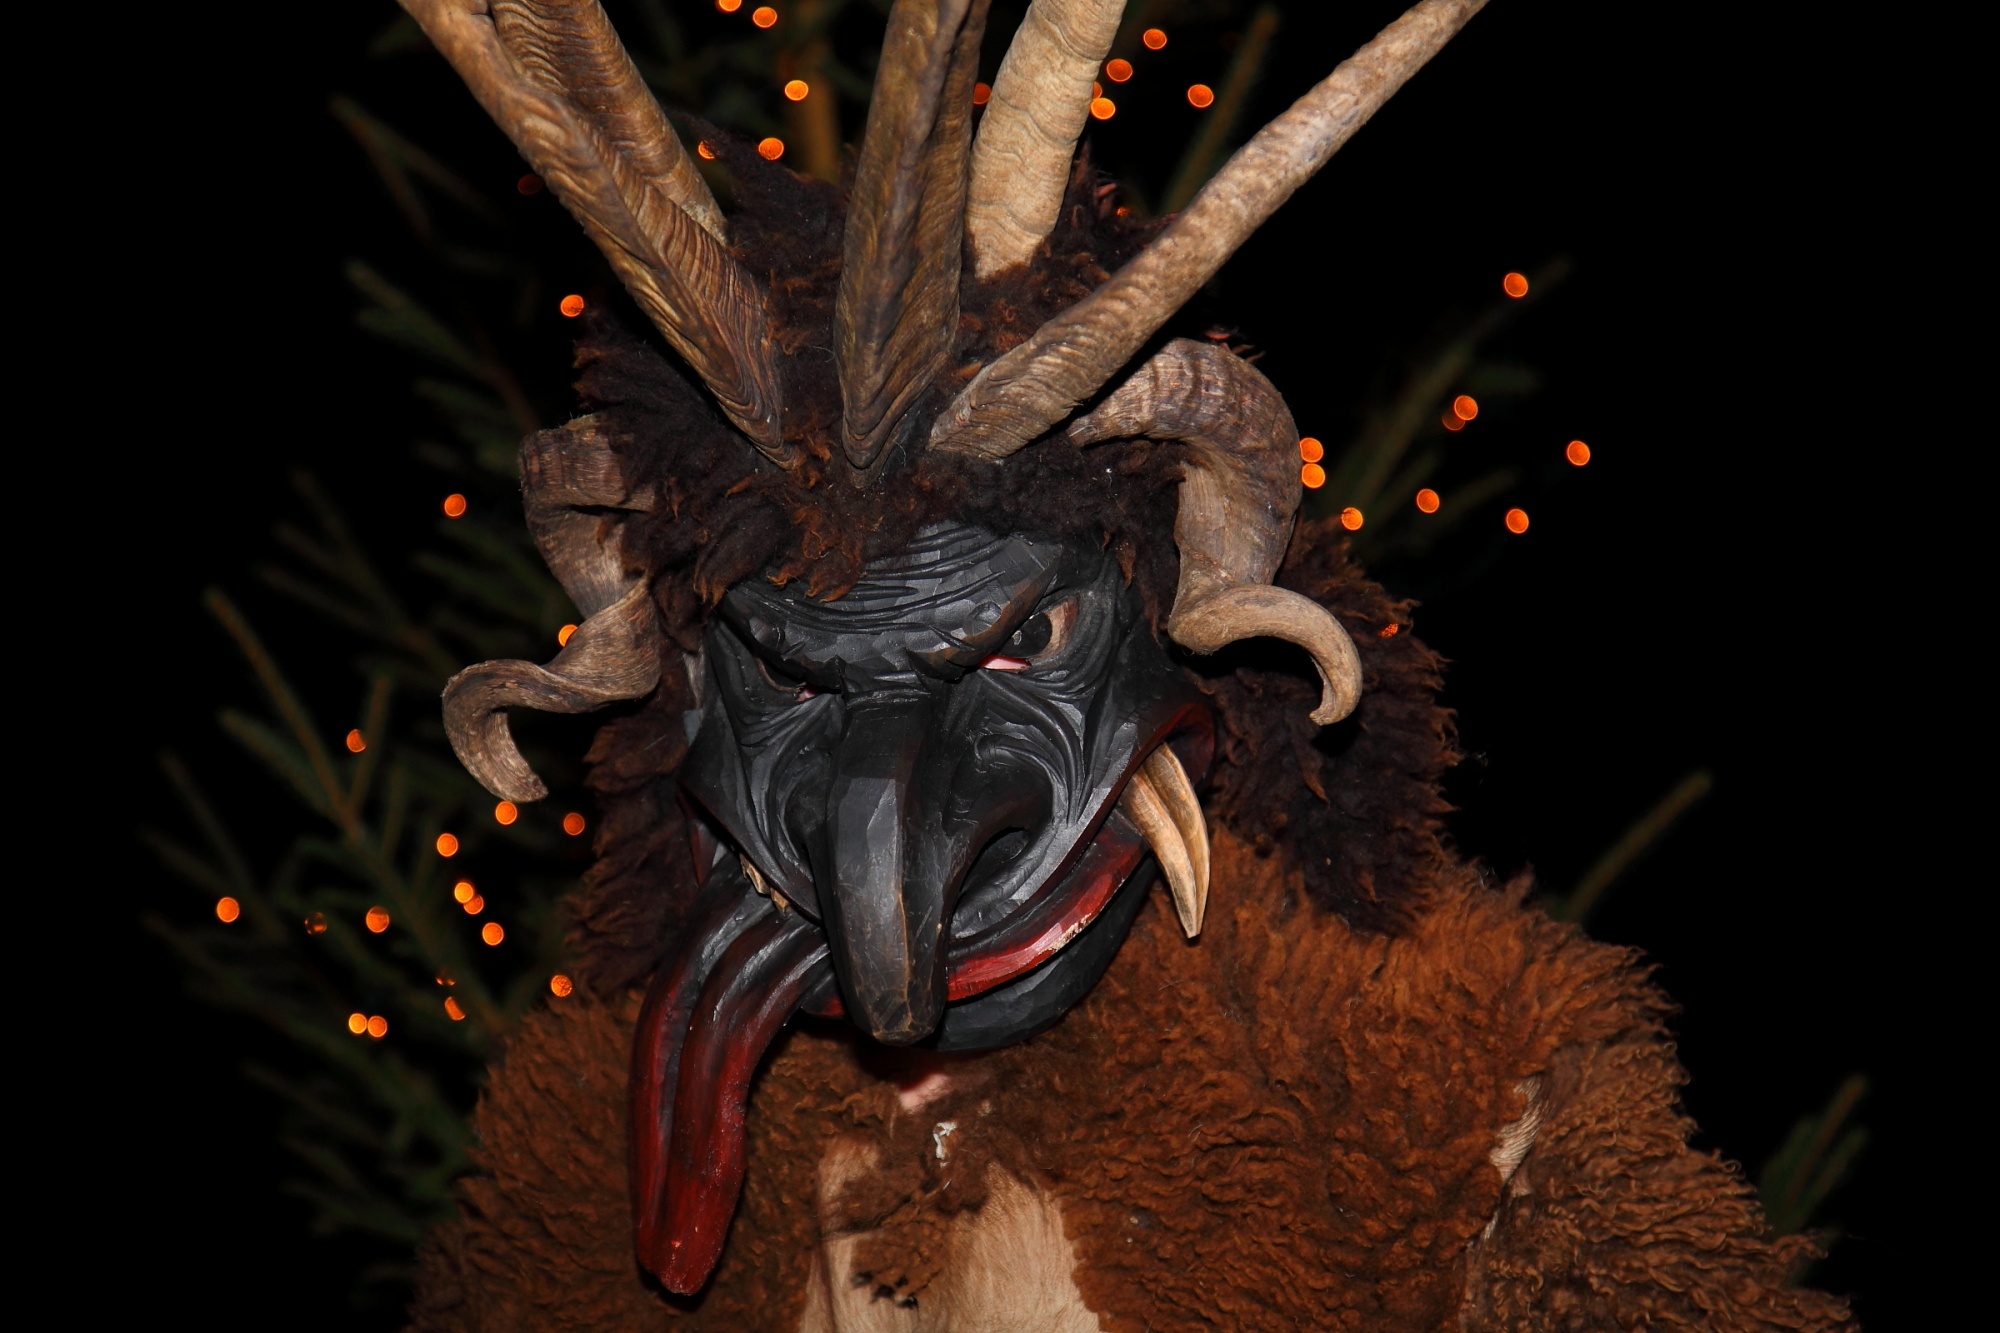 Krampus and Perchten at the advent market in Grossarl